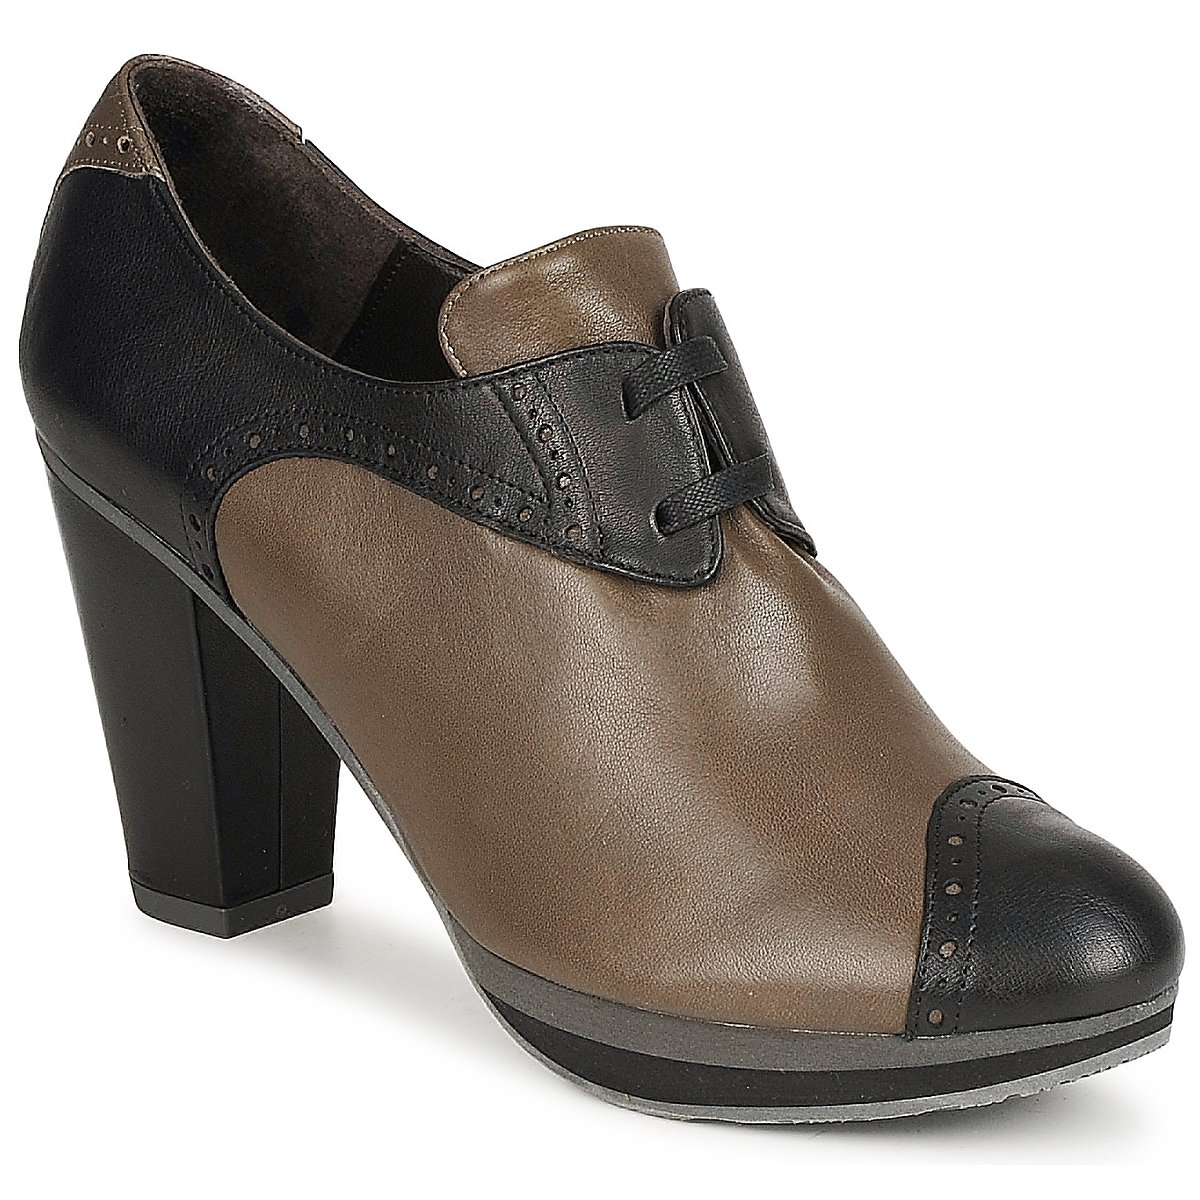 Audley GETA LACE Marrone